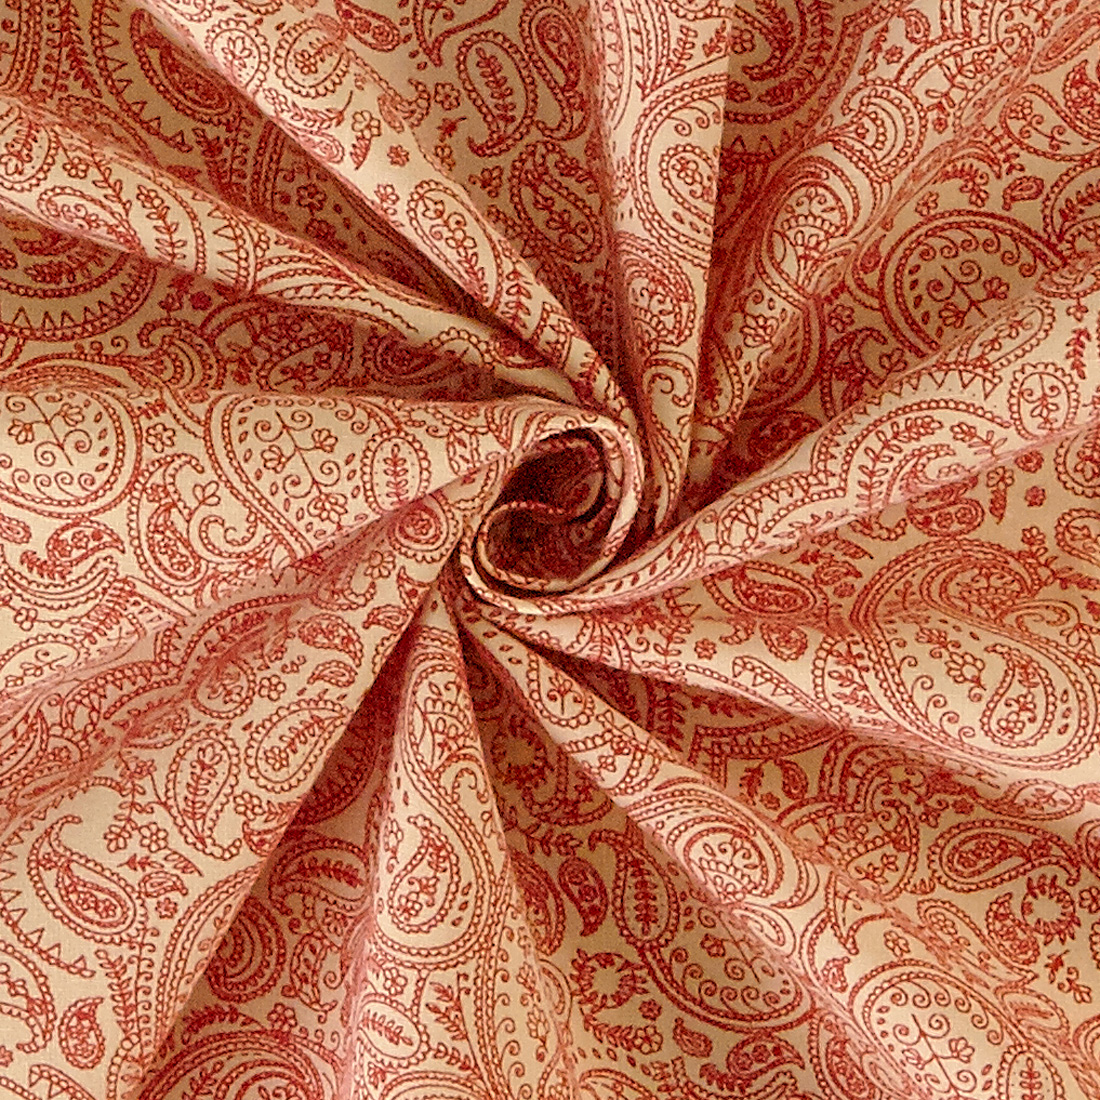 Cotton Paisley Print Red